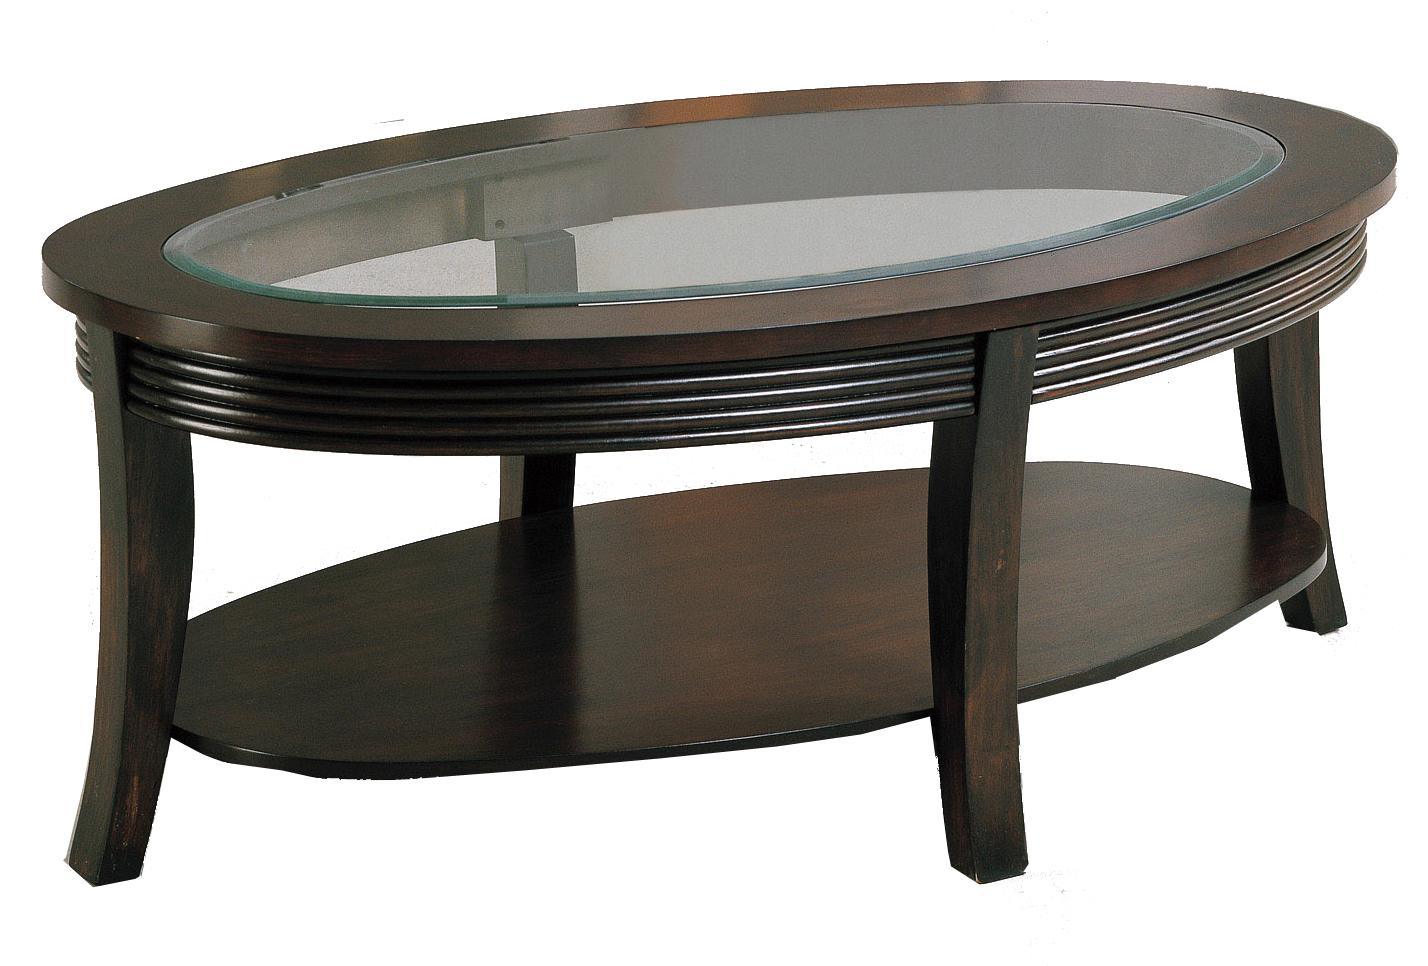 Crown mark simone 4253 01 glass top coffee table del sol for Markup table